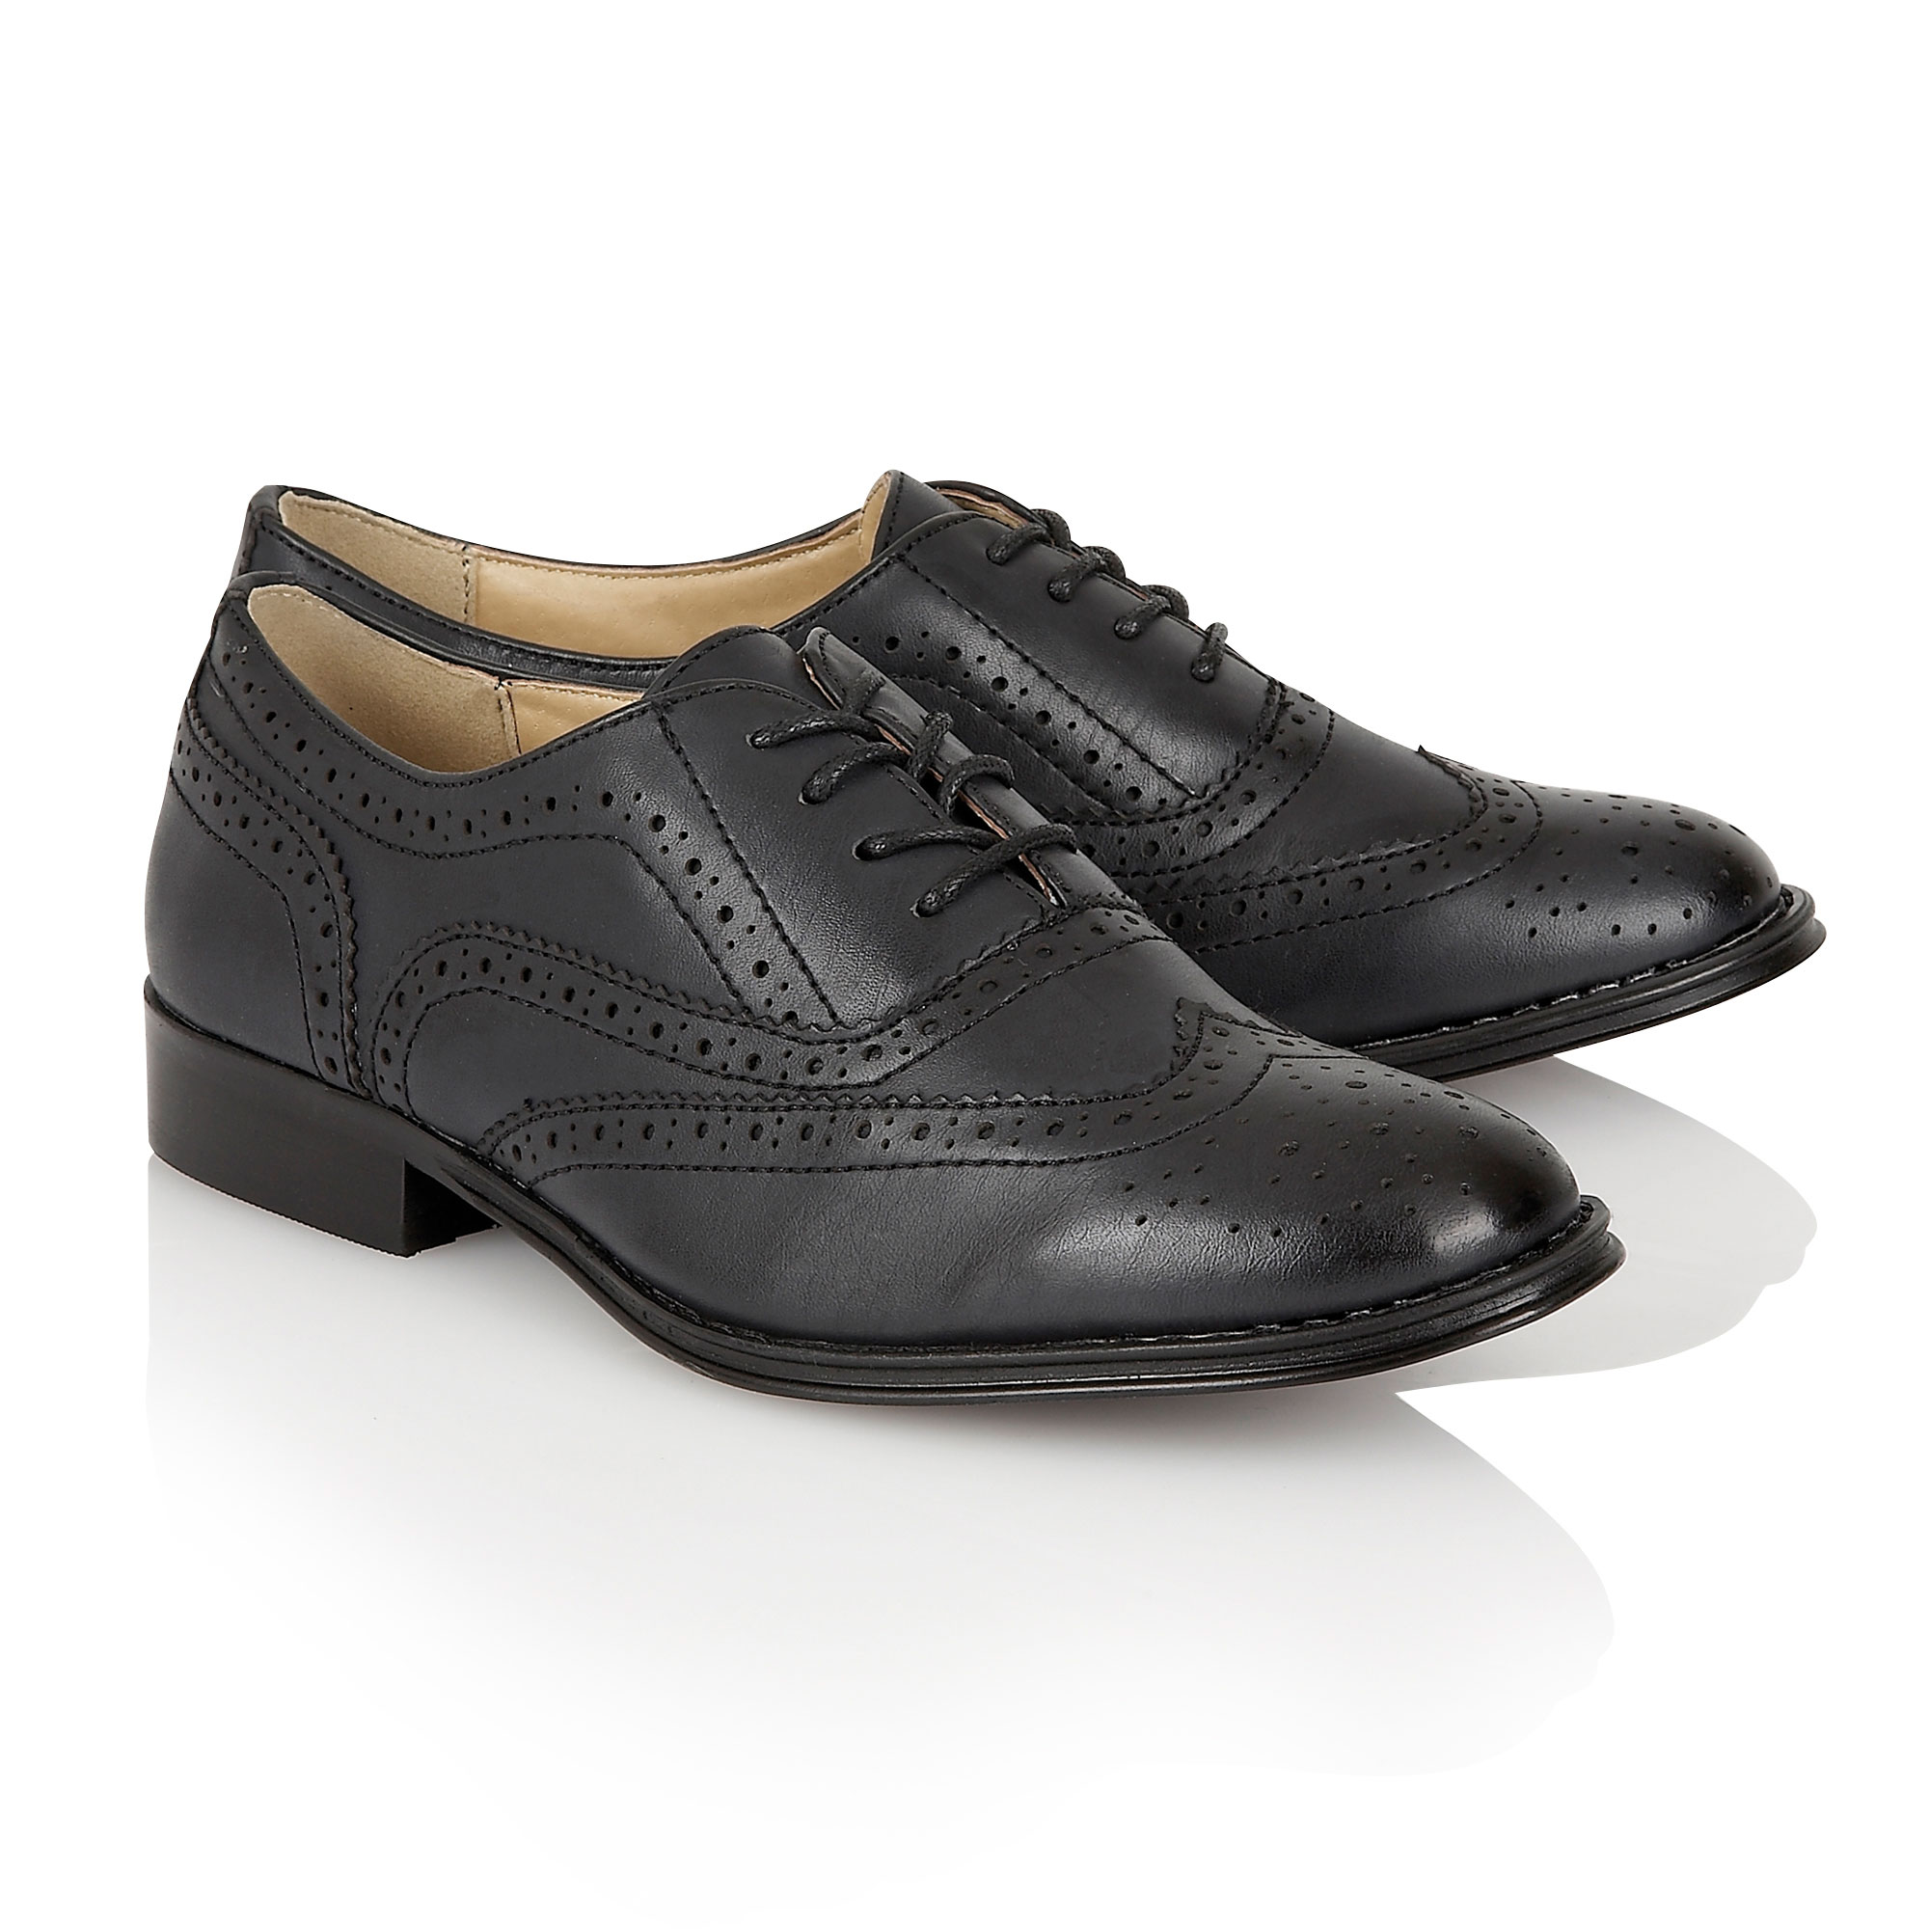 Womens Leather Brogue Shoes Uk